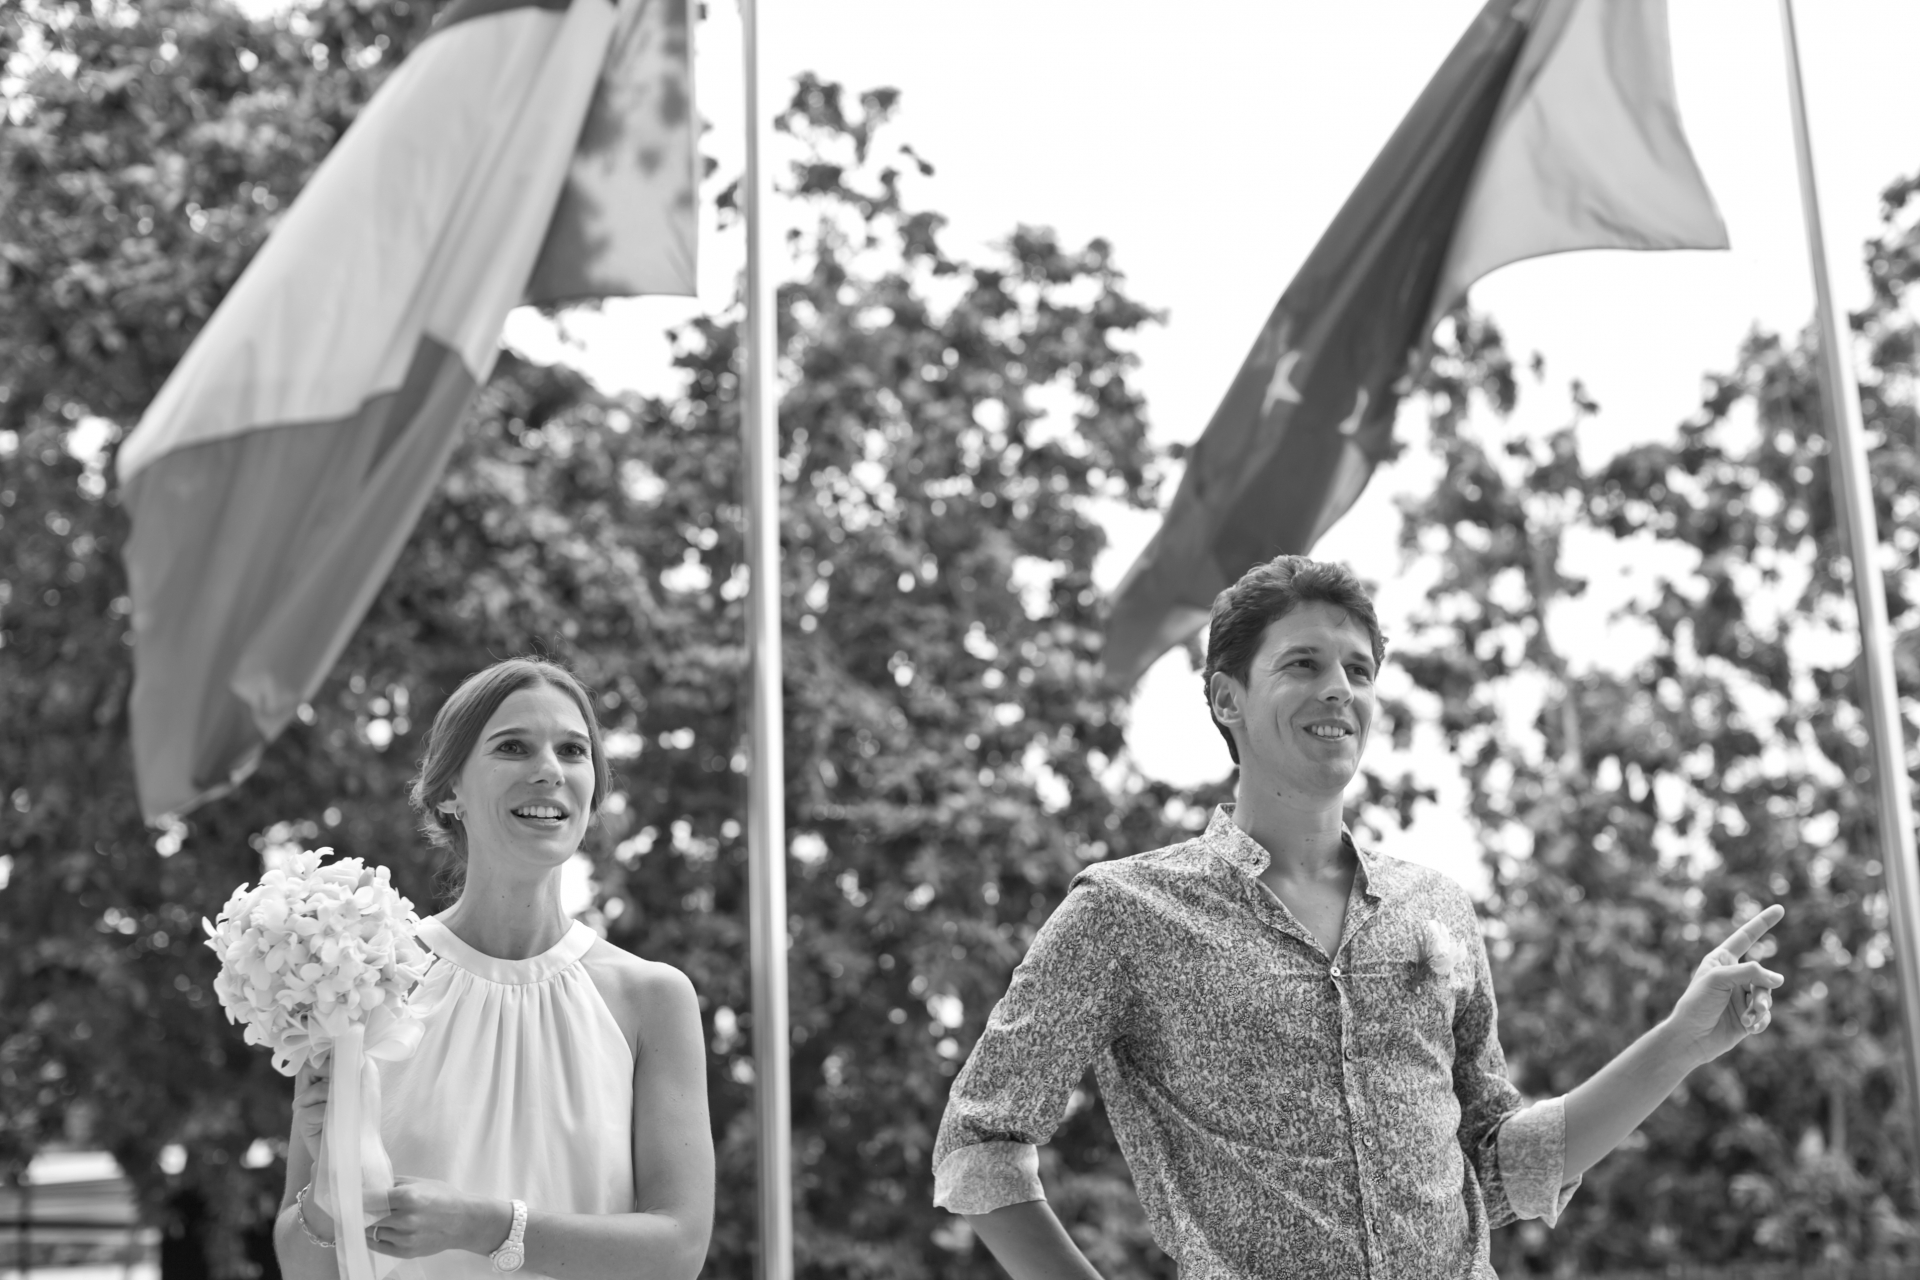 Singapore Elopement Images | The young couple stand together beneath the flags of France and Singapore